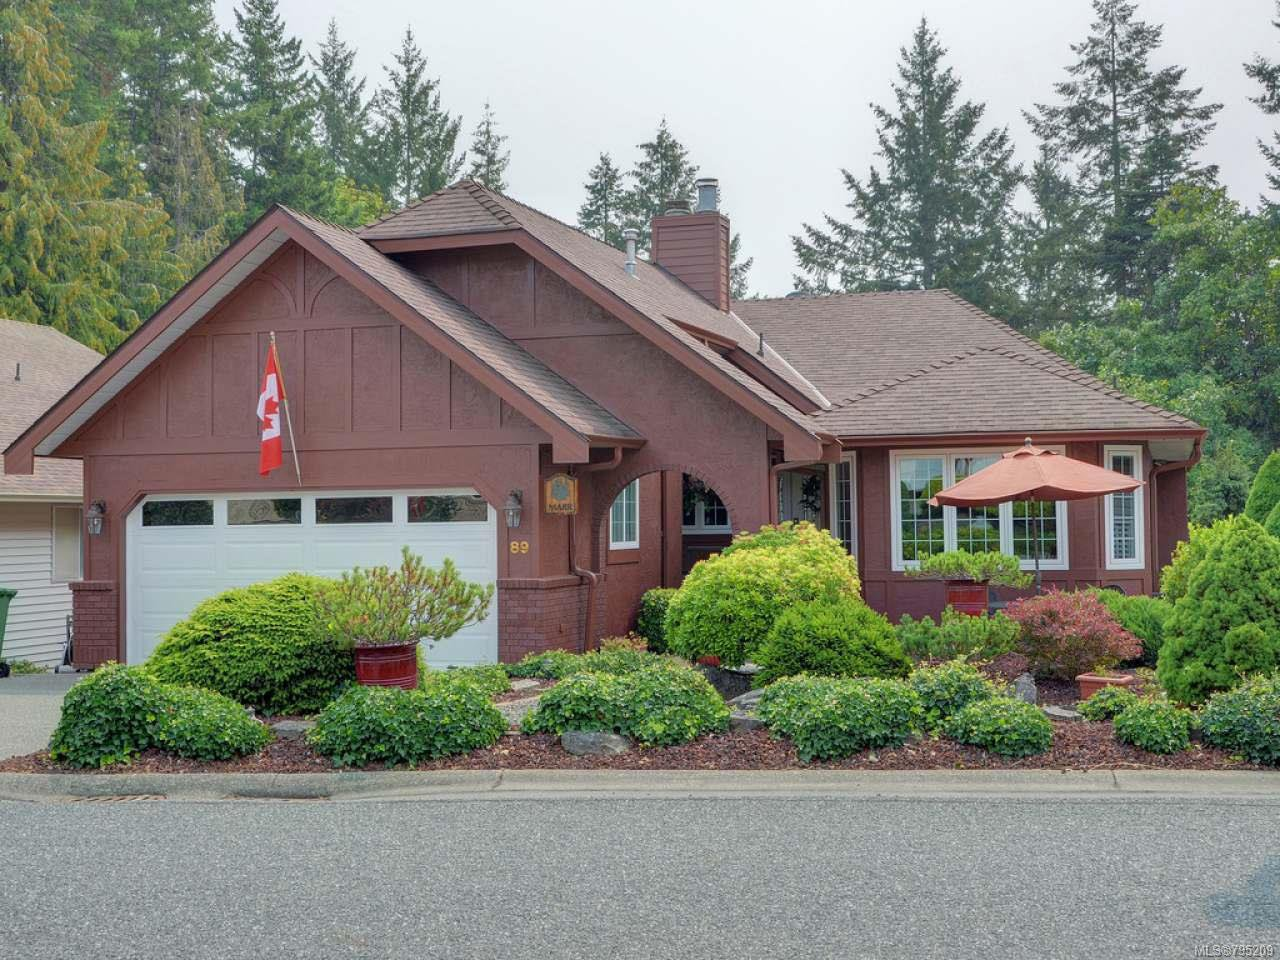 Main Photo: 89 Marine Dr in COBBLE HILL: ML Cobble Hill House for sale (Malahat & Area)  : MLS®# 795209